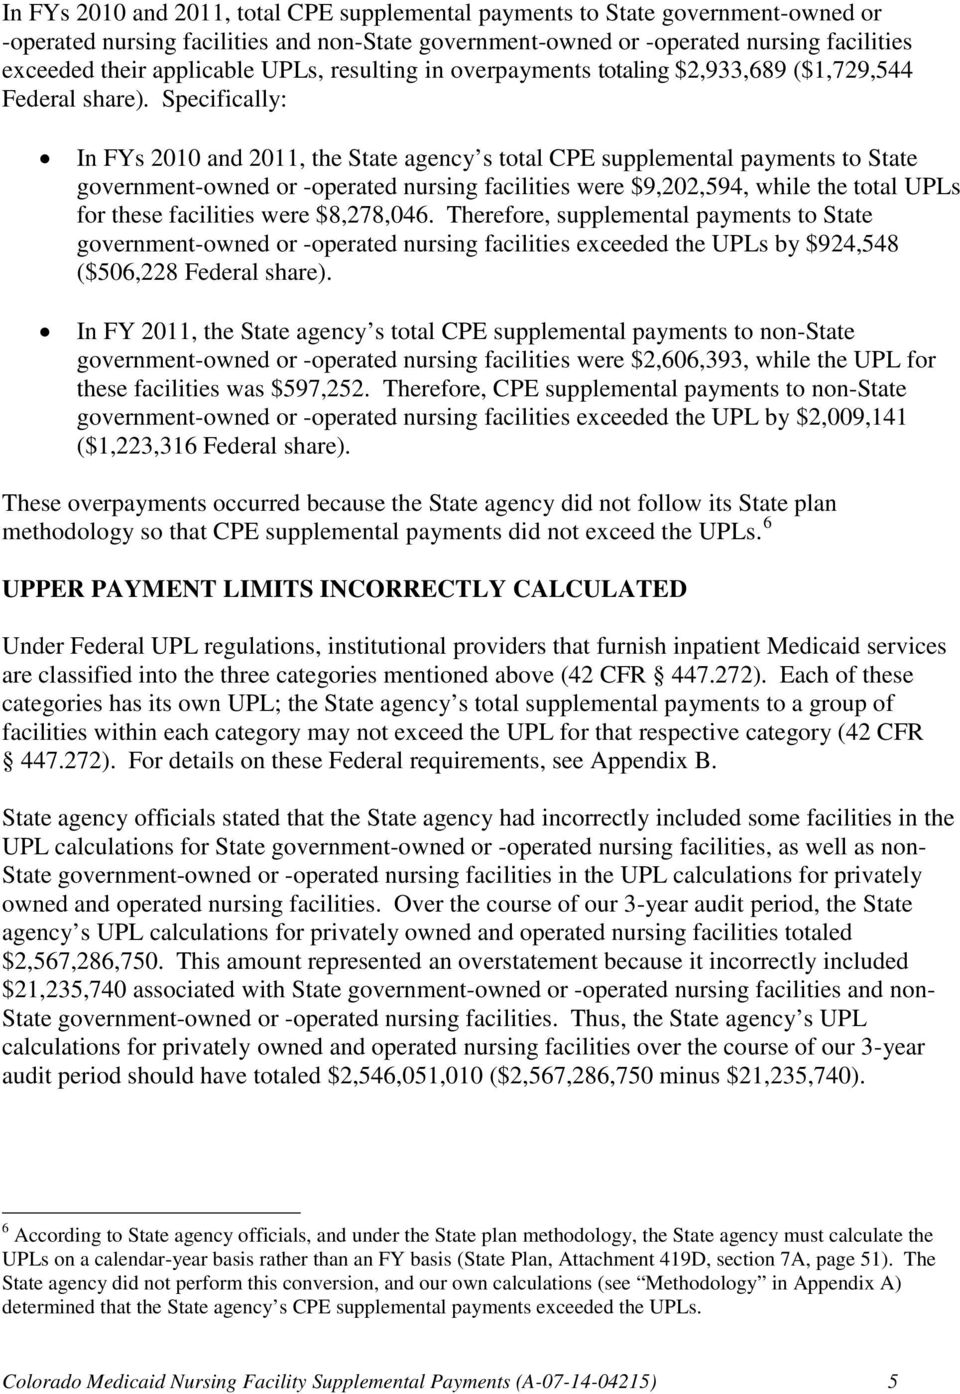 Specifically: In FYs 2010 and 2011, the State agency s total CPE supplemental payments to State government-owned or -operated nursing facilities were $9,202,594, while the total UPLs for these